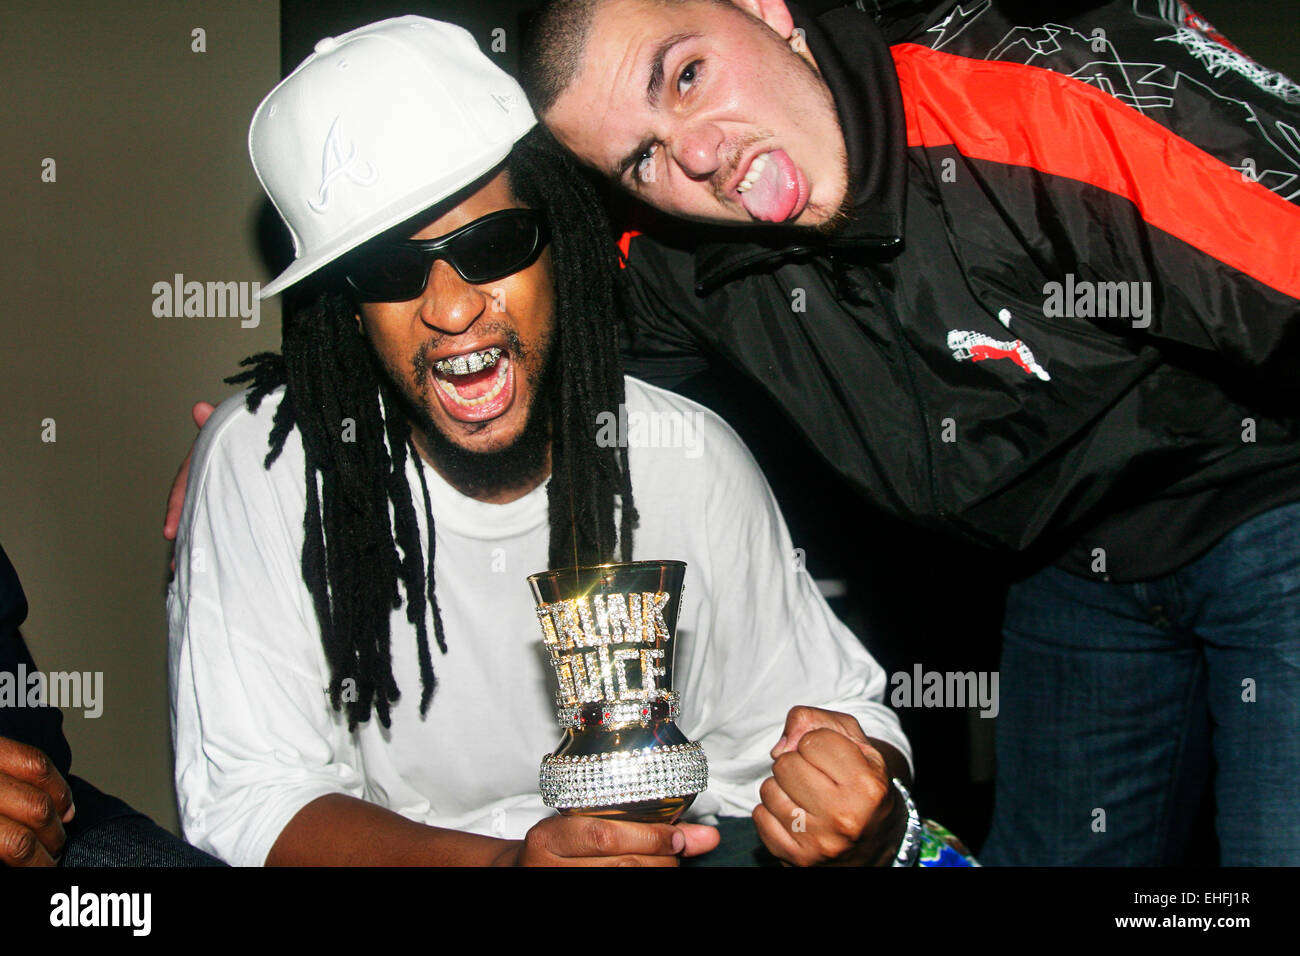 Lil Jon and the Pitbull backstage at Crunk Juice at The Carling Academy Islington. - Stock Image